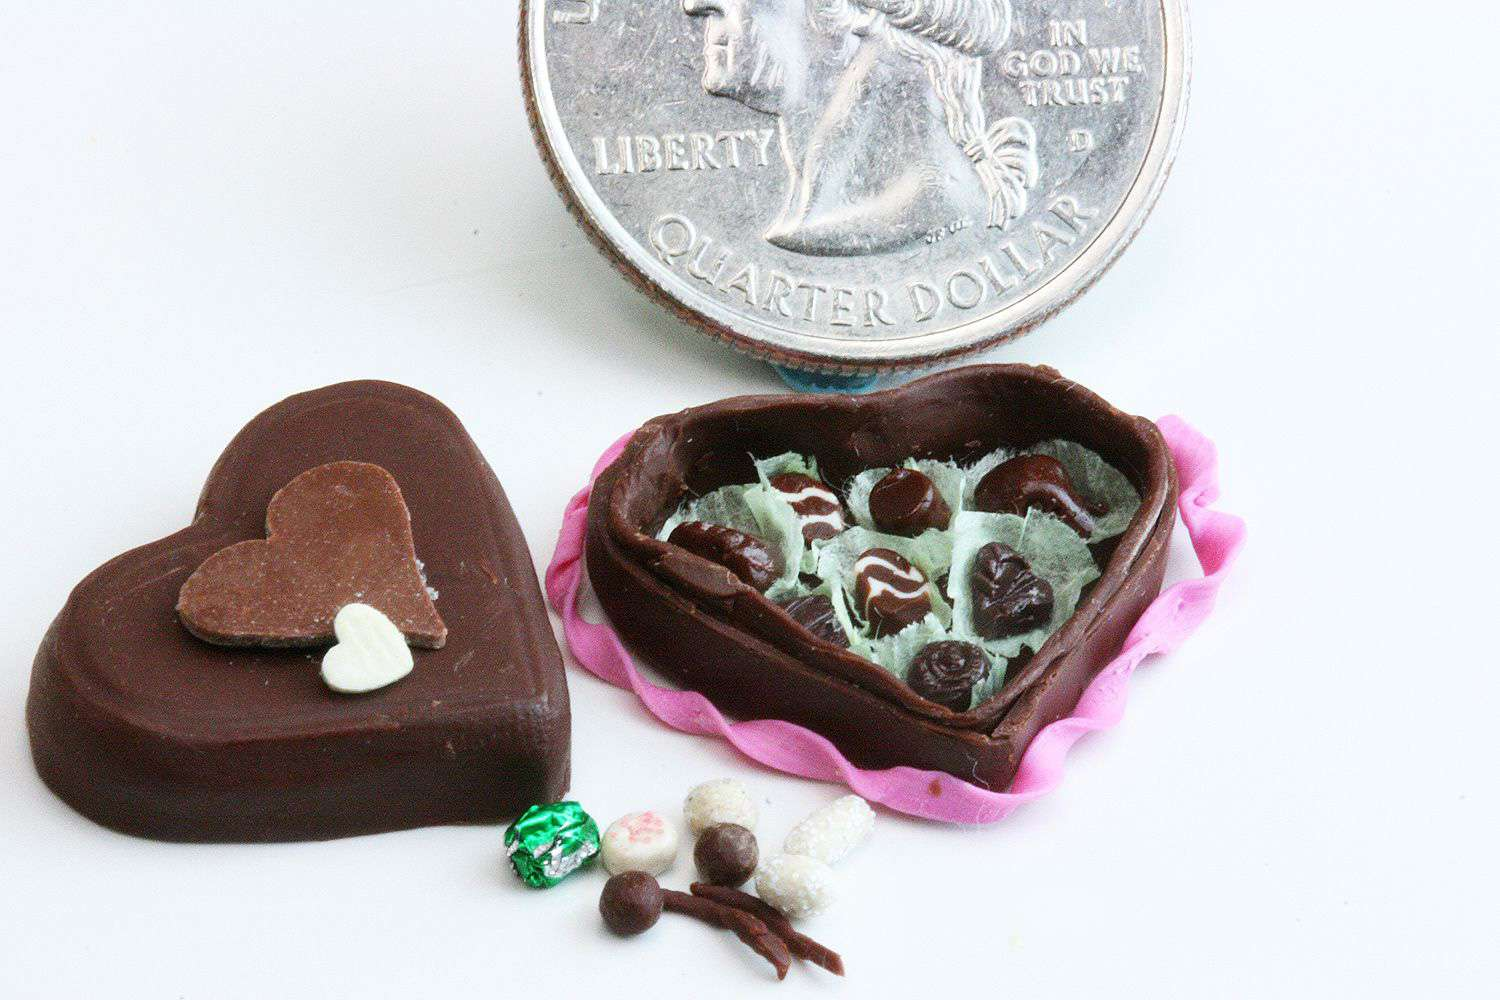 Chocolate heart-shaped box made from polymer clay over a metal former